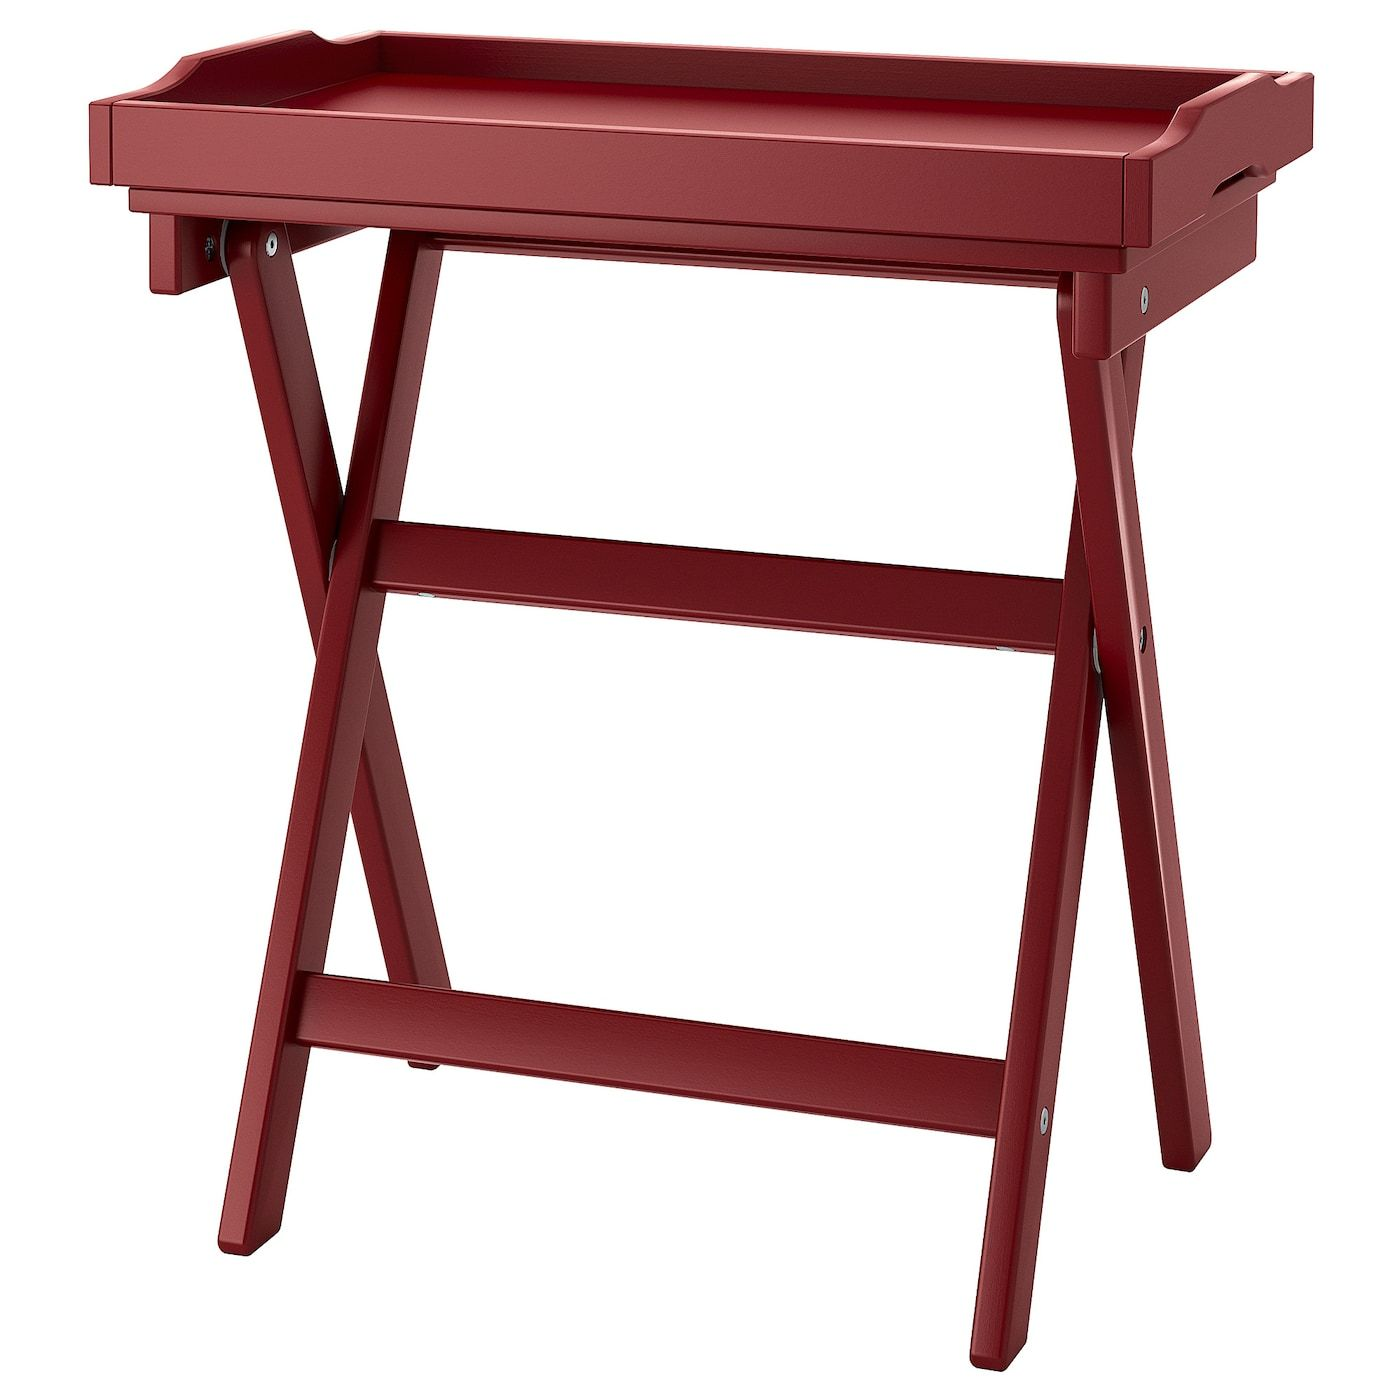 Maryd Tray Table Dark Red 22 7 8x15x22 7 8 In 2020